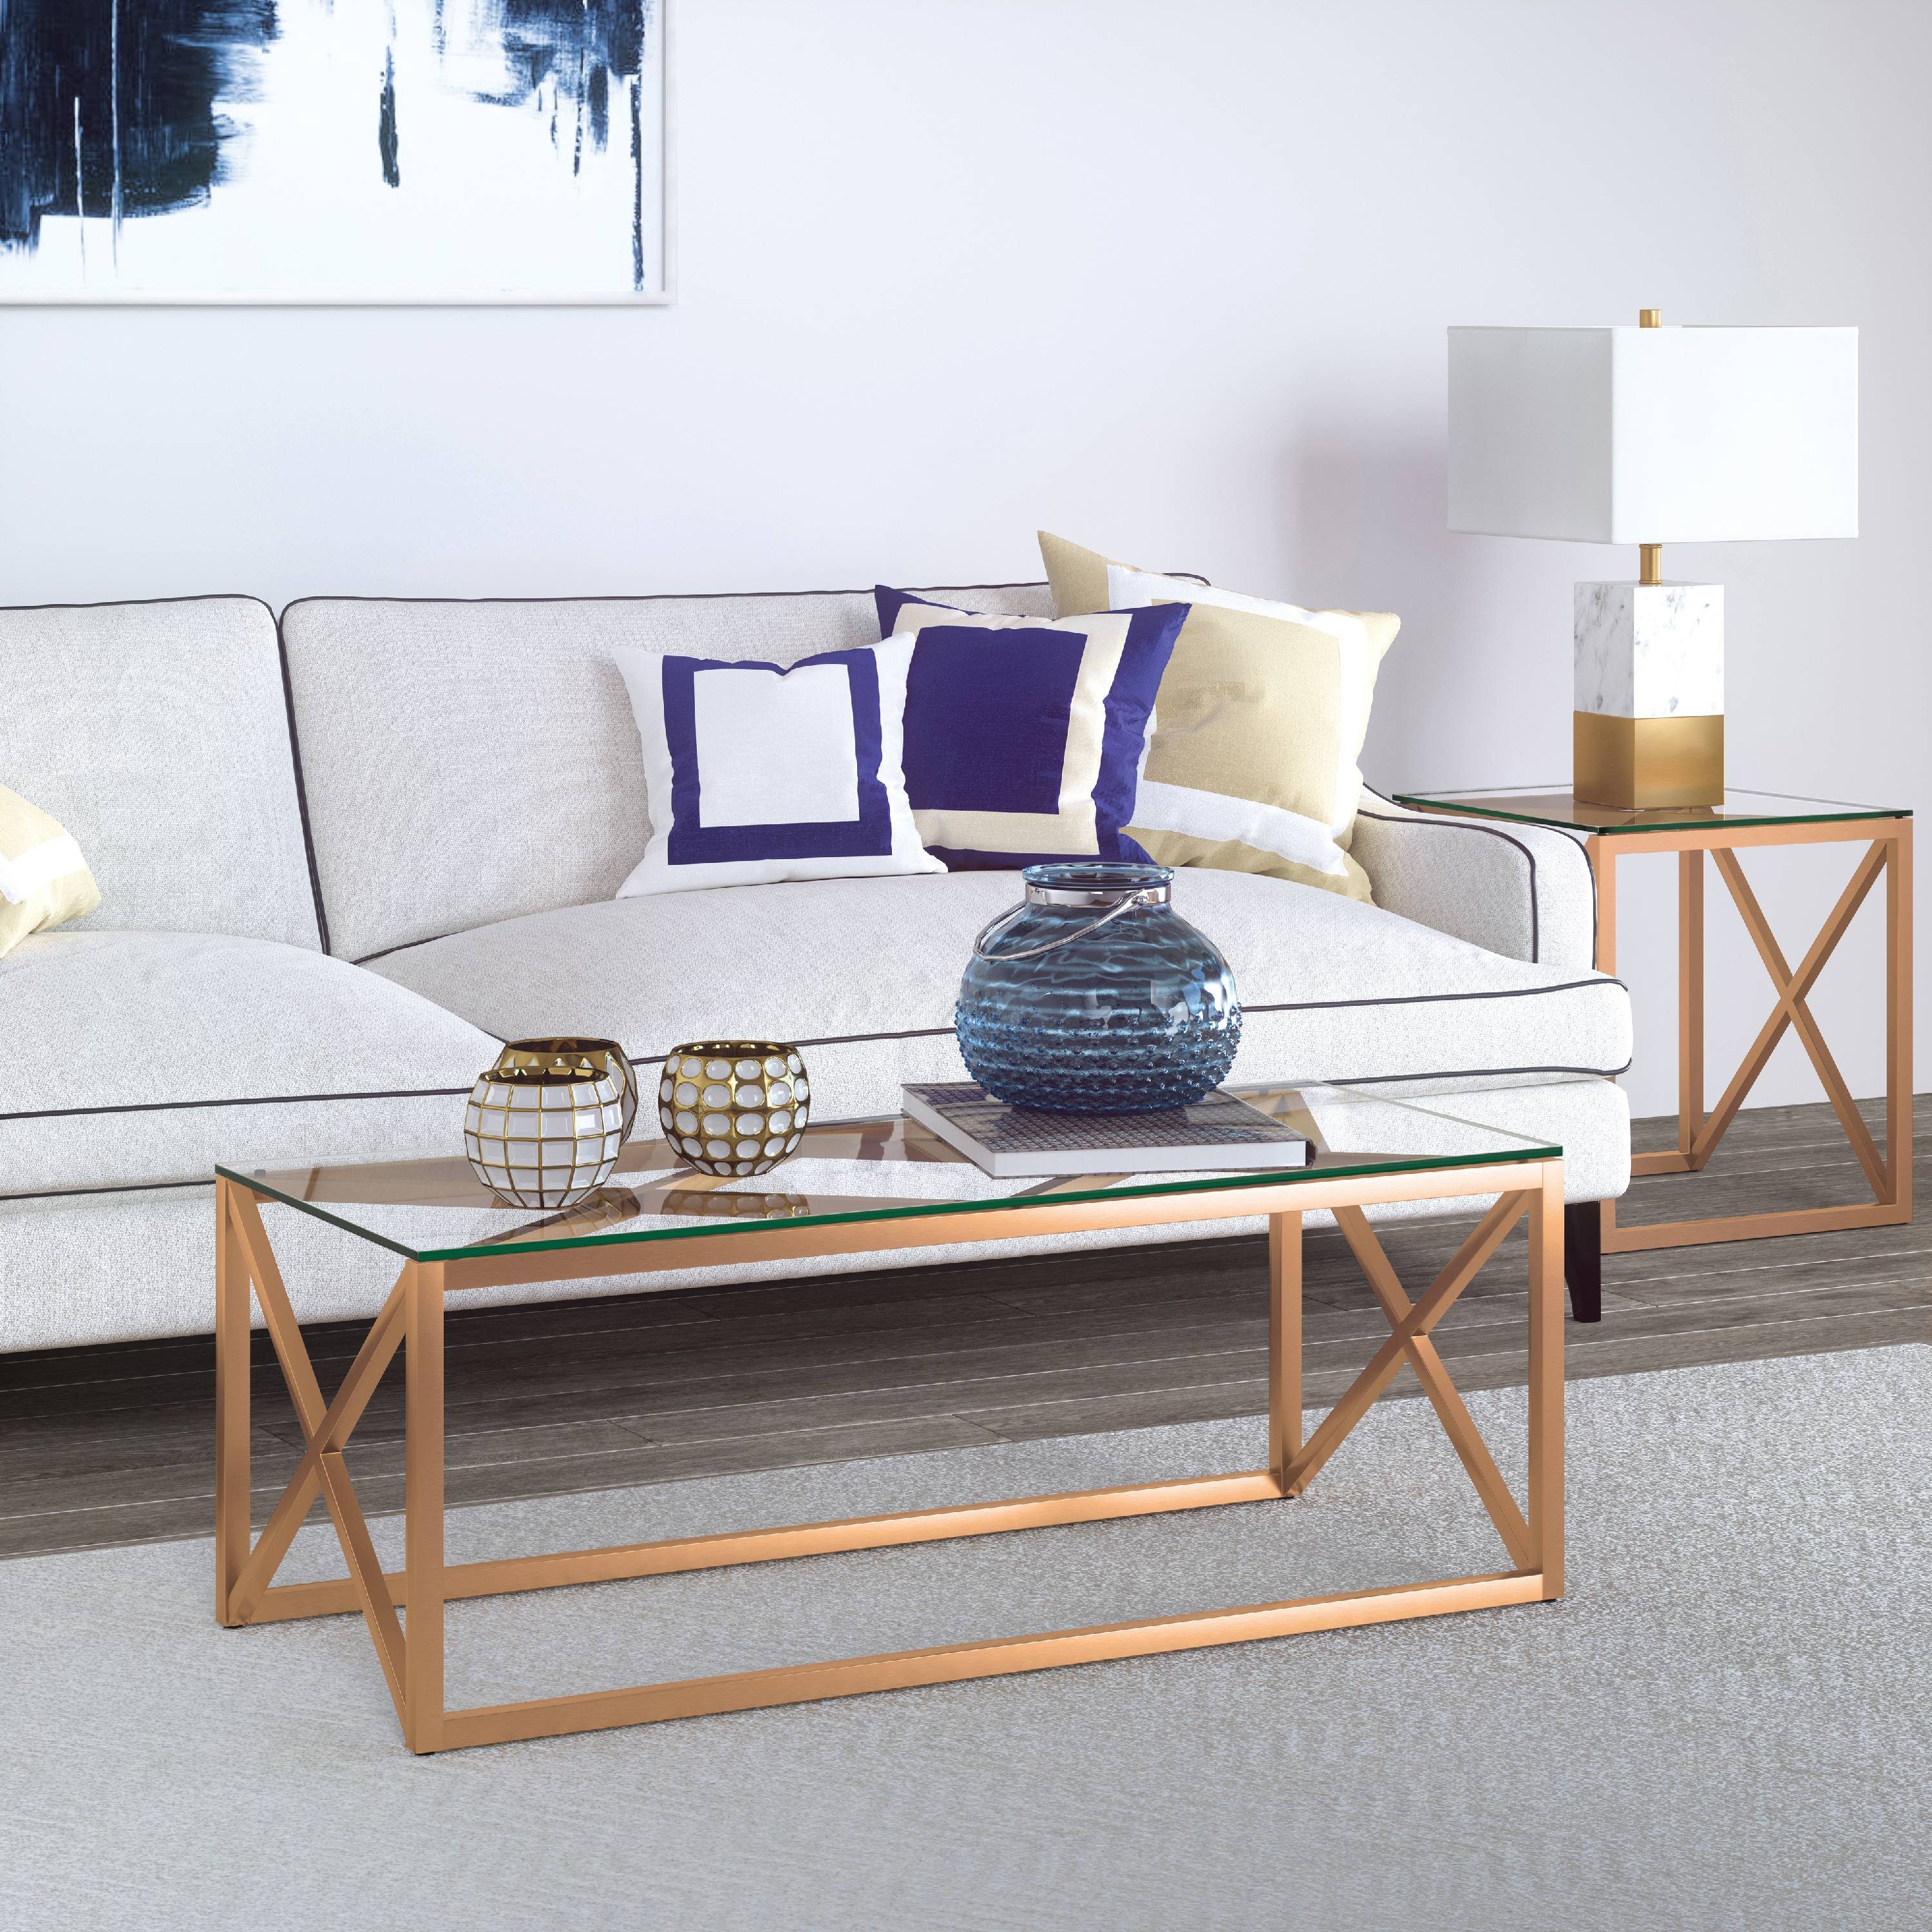 Dixon coffee table in gold